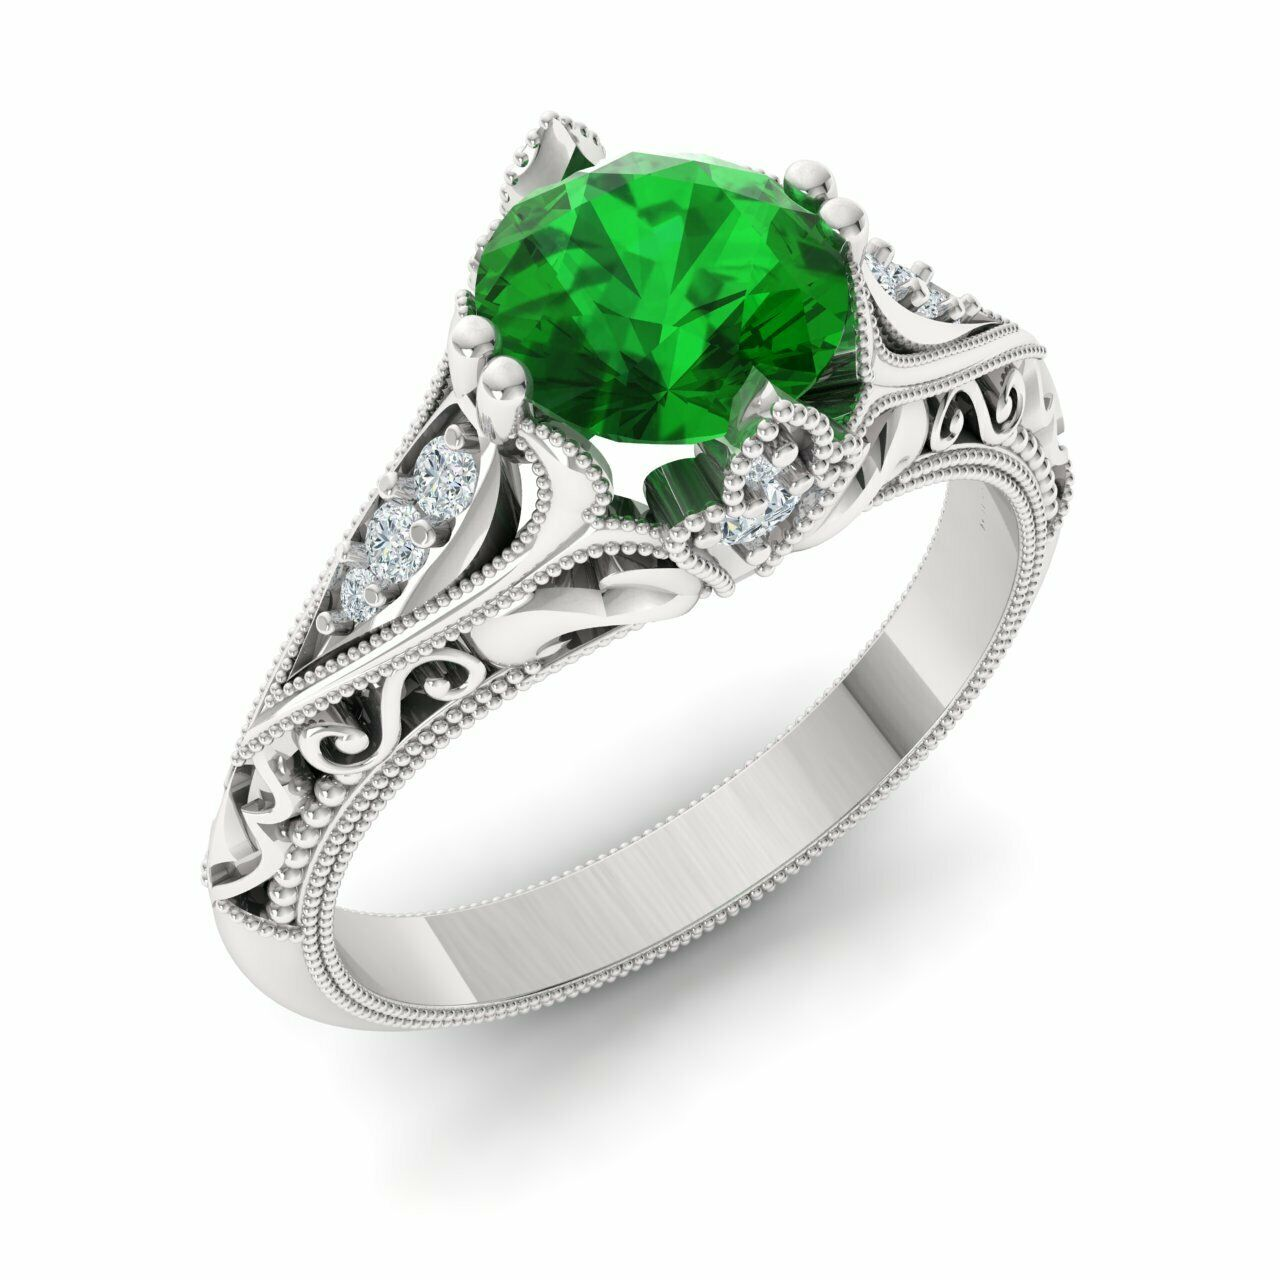 Certified 1.23 Ctw Emerald & Diamond 14k White gold Vintage Look Engagement Ring